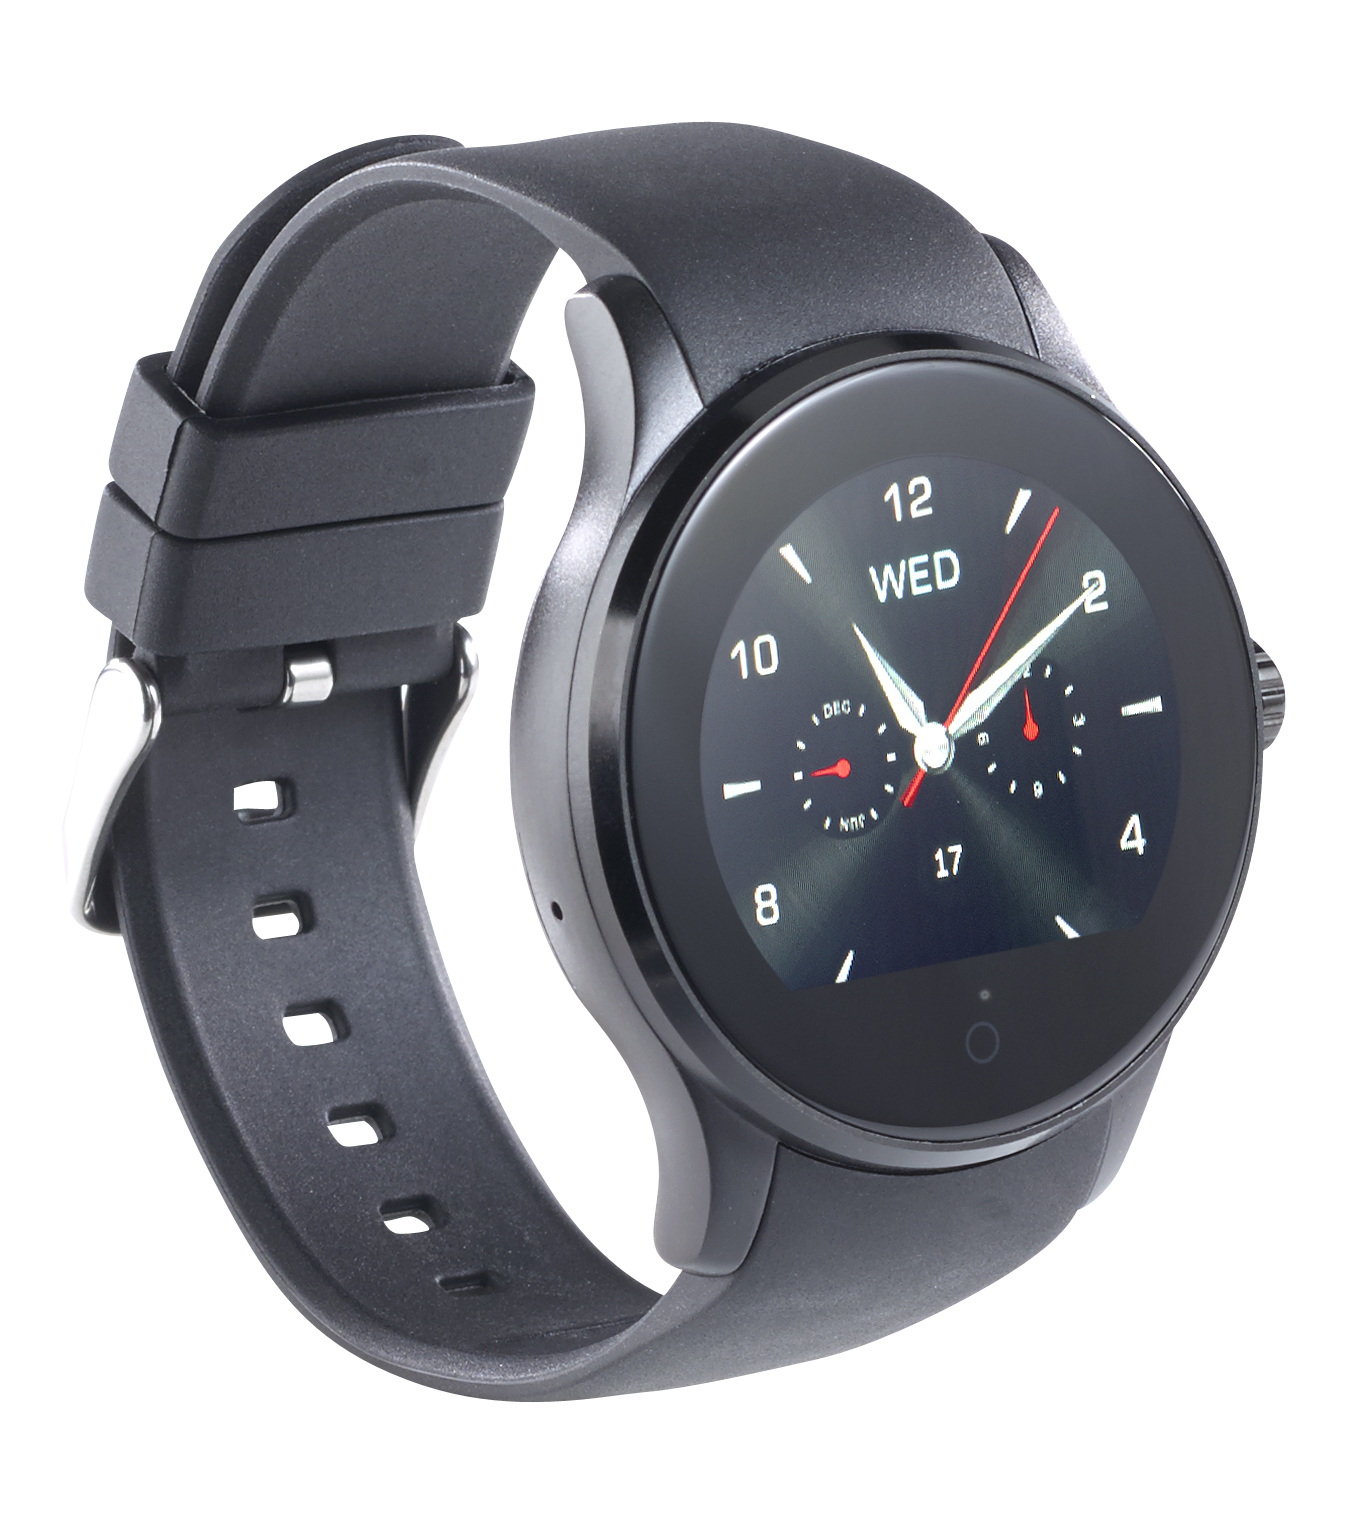 simvalley mobile handy uhr bluetooth smartwatch f r ios. Black Bedroom Furniture Sets. Home Design Ideas